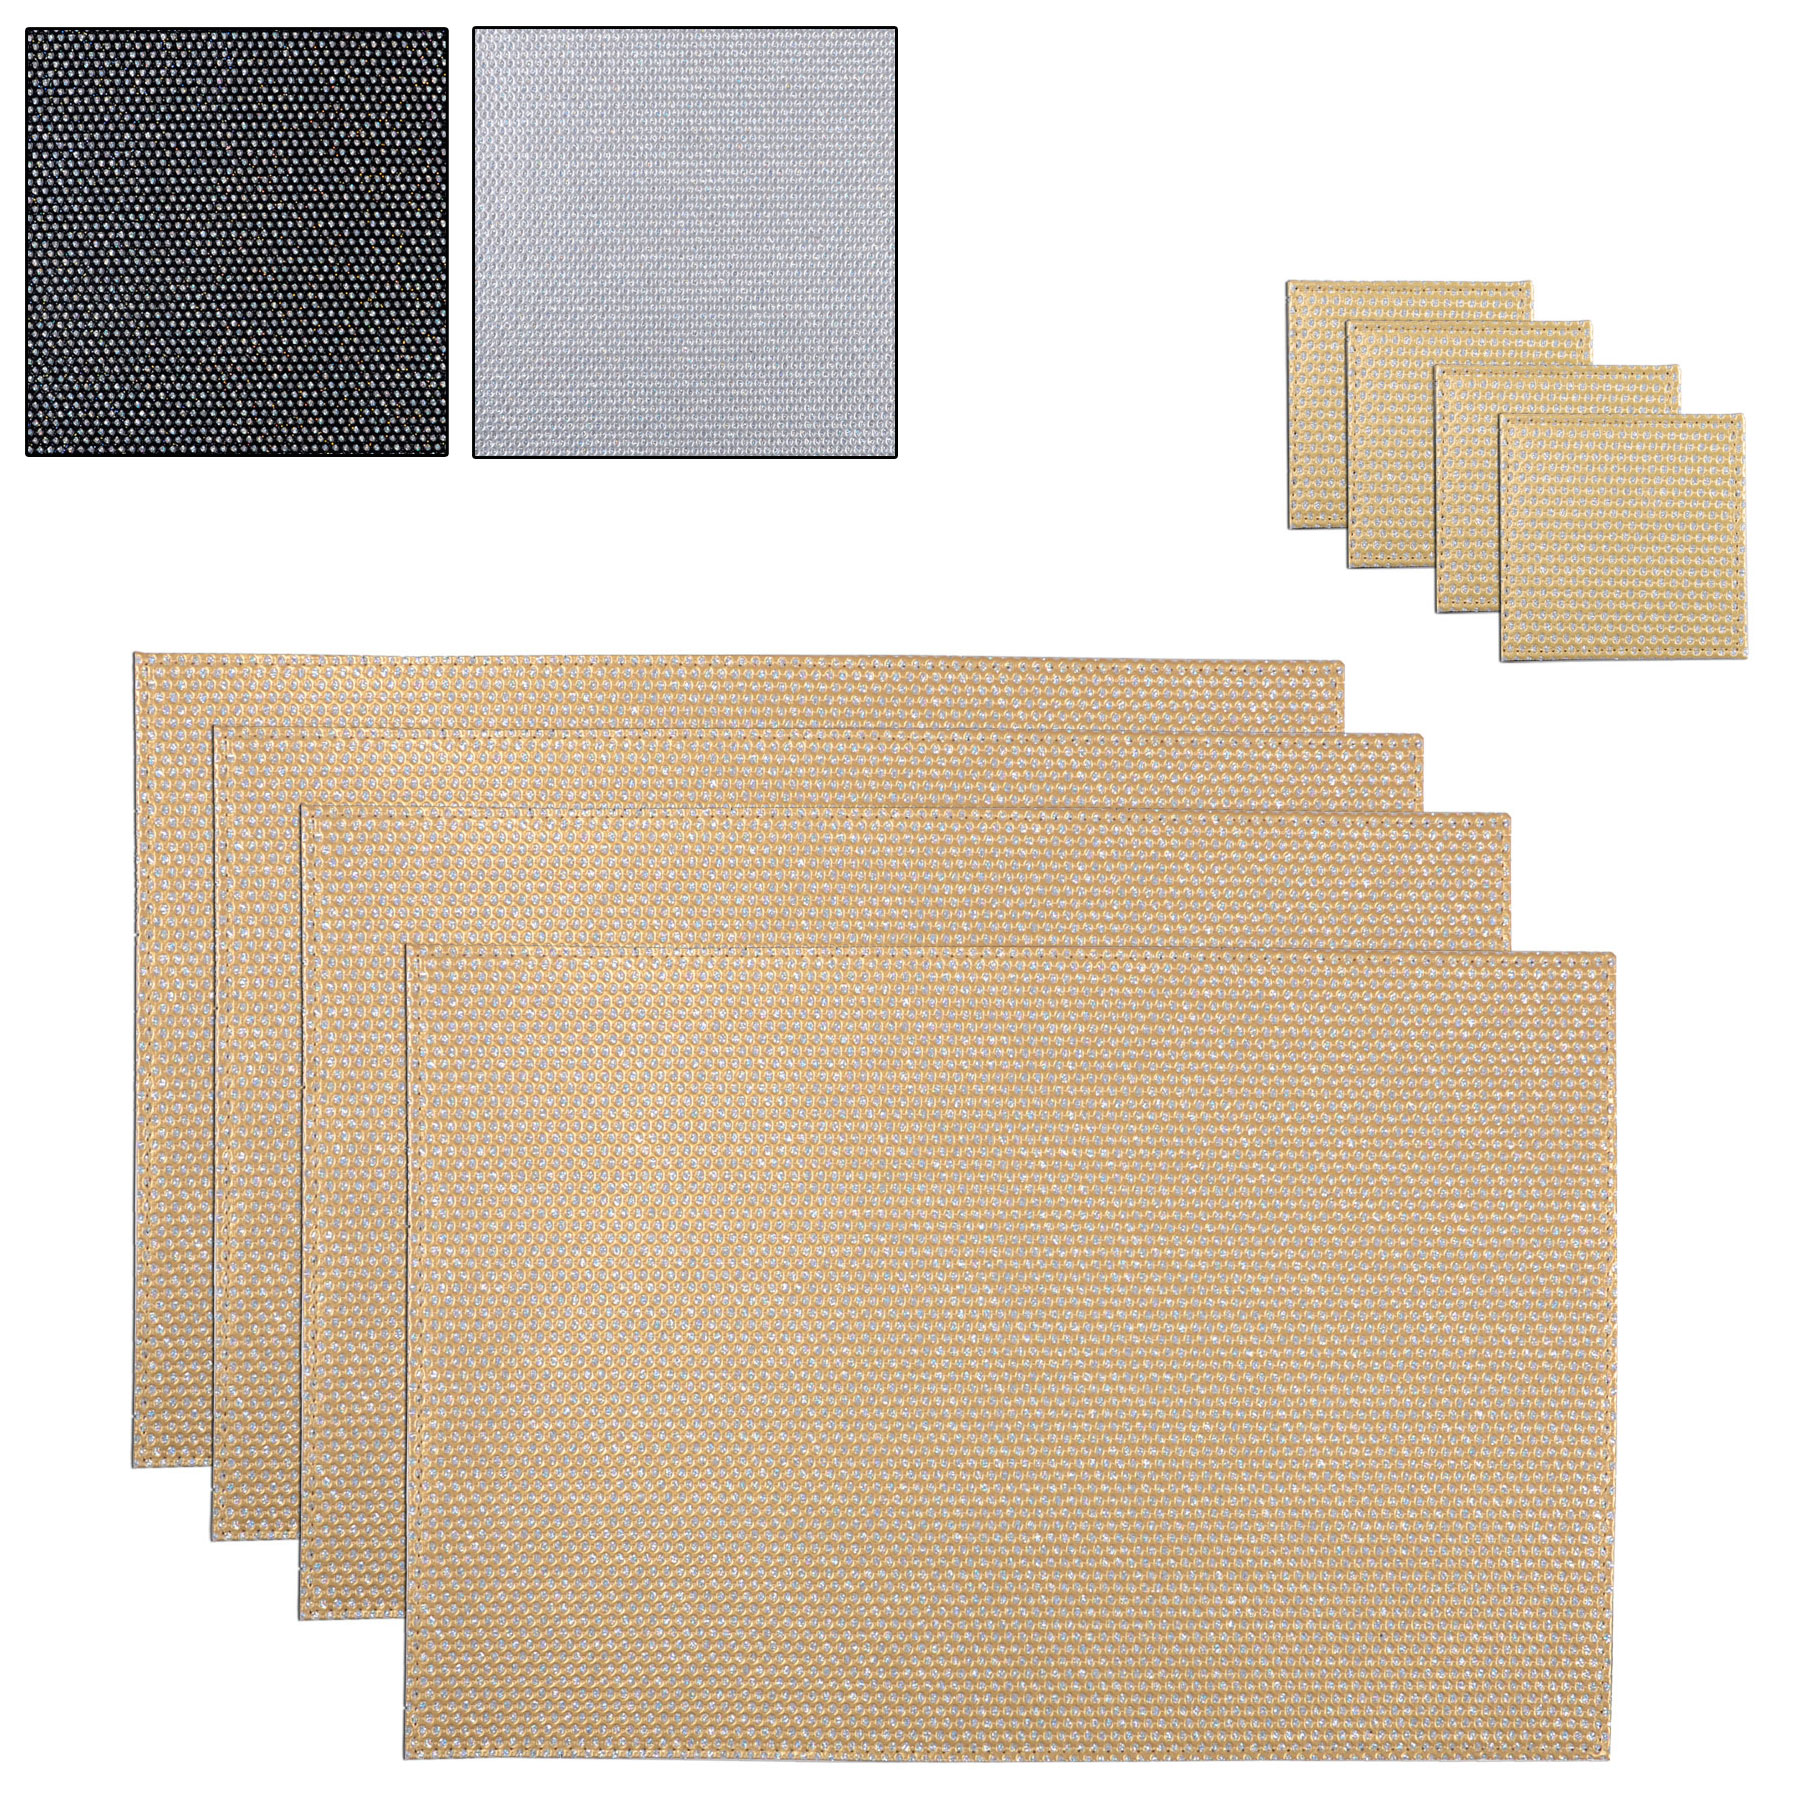 Dining table mats - Distinctive Types Of Table Mats For Dining Table